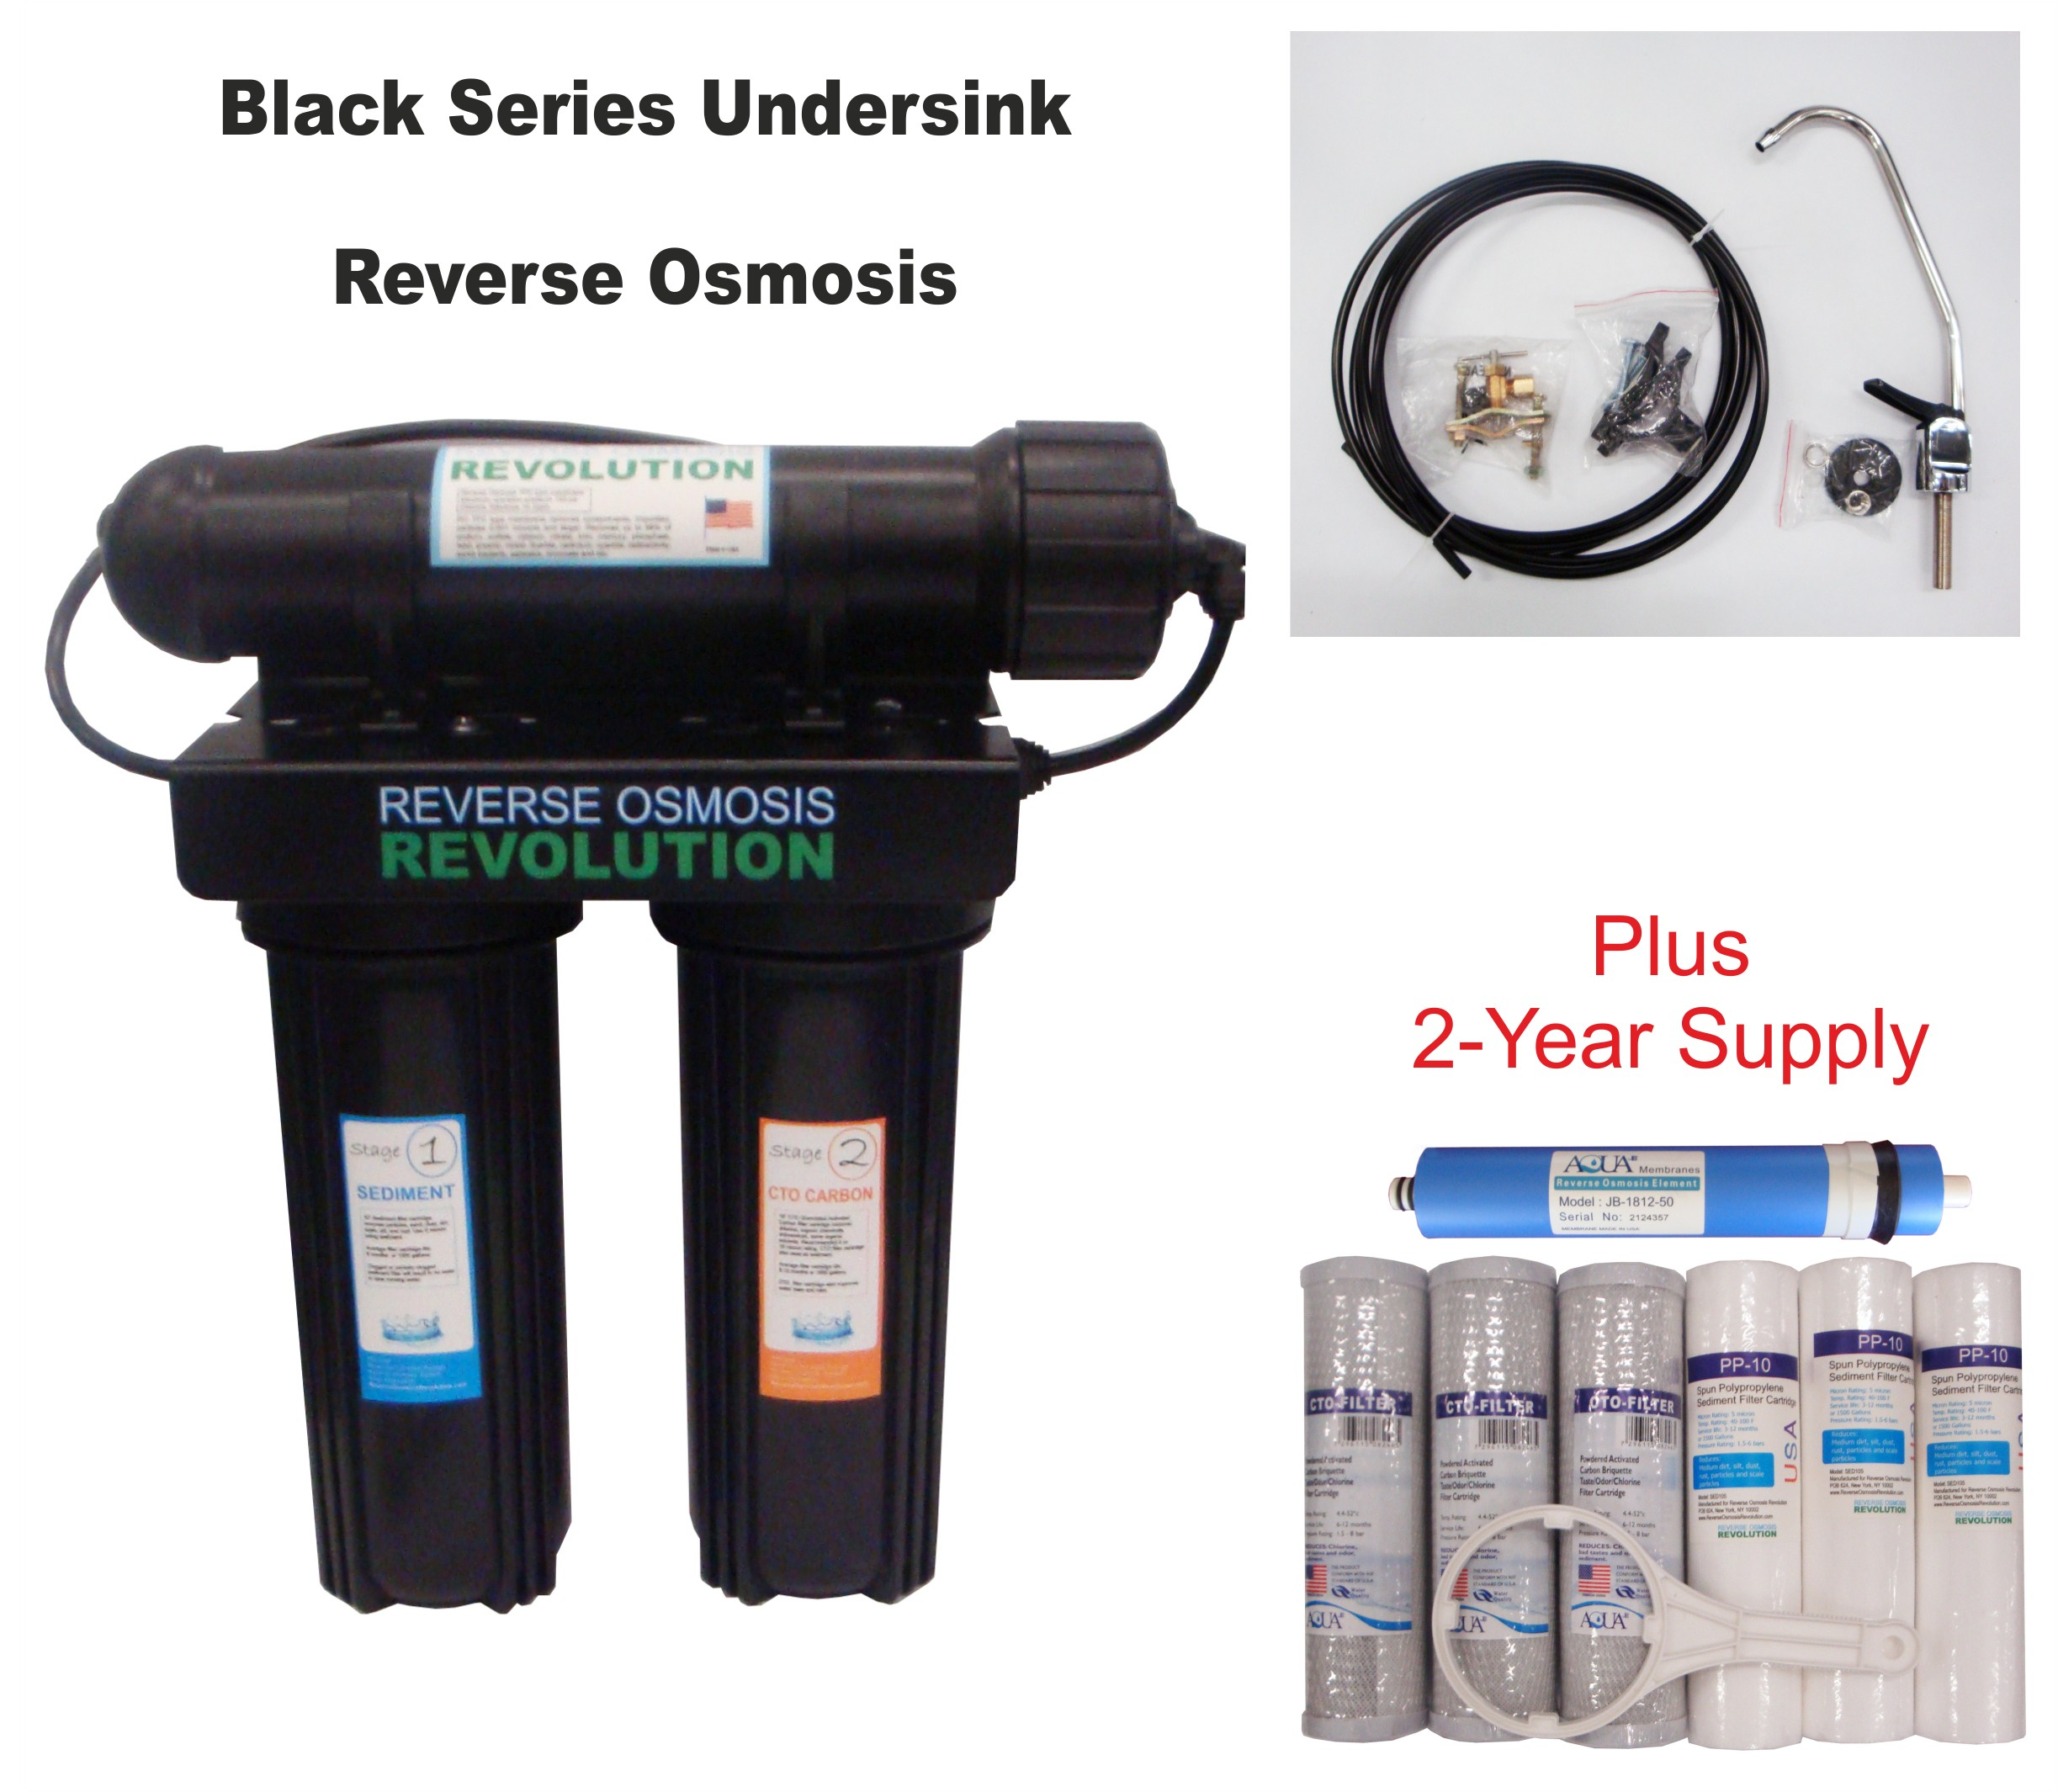 Black Series Expandable Home Drinking Reverse Osmosis System. Kitchen Undersink installation. 50/75/100/150 GPD Membrane